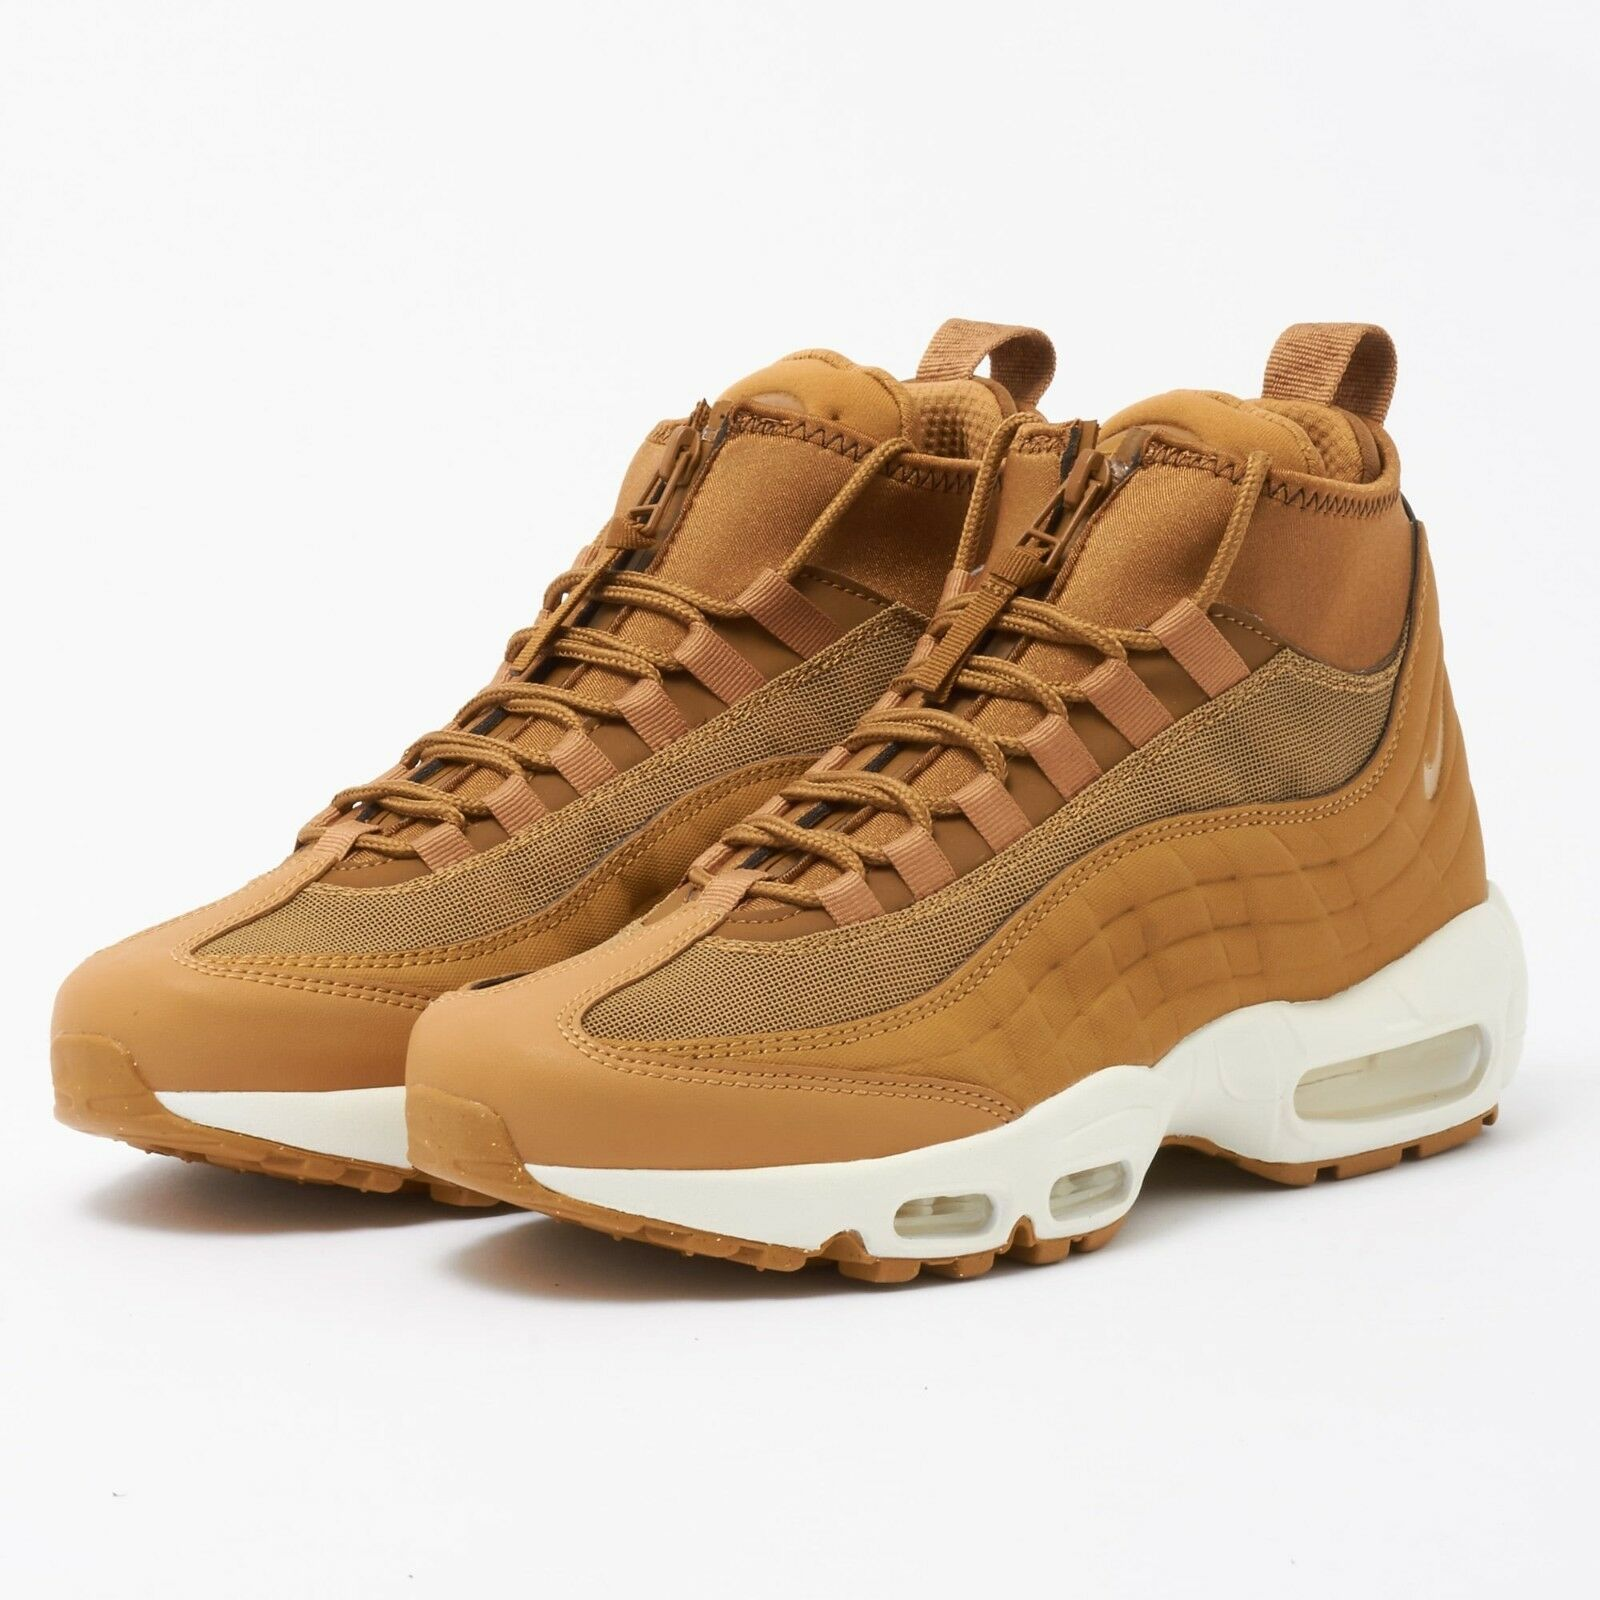 Nike Men's AIR MAX 95 SNEAKERBOOT FLAX Shoes 806809-2018 b New shoes for men and women, limited time discount